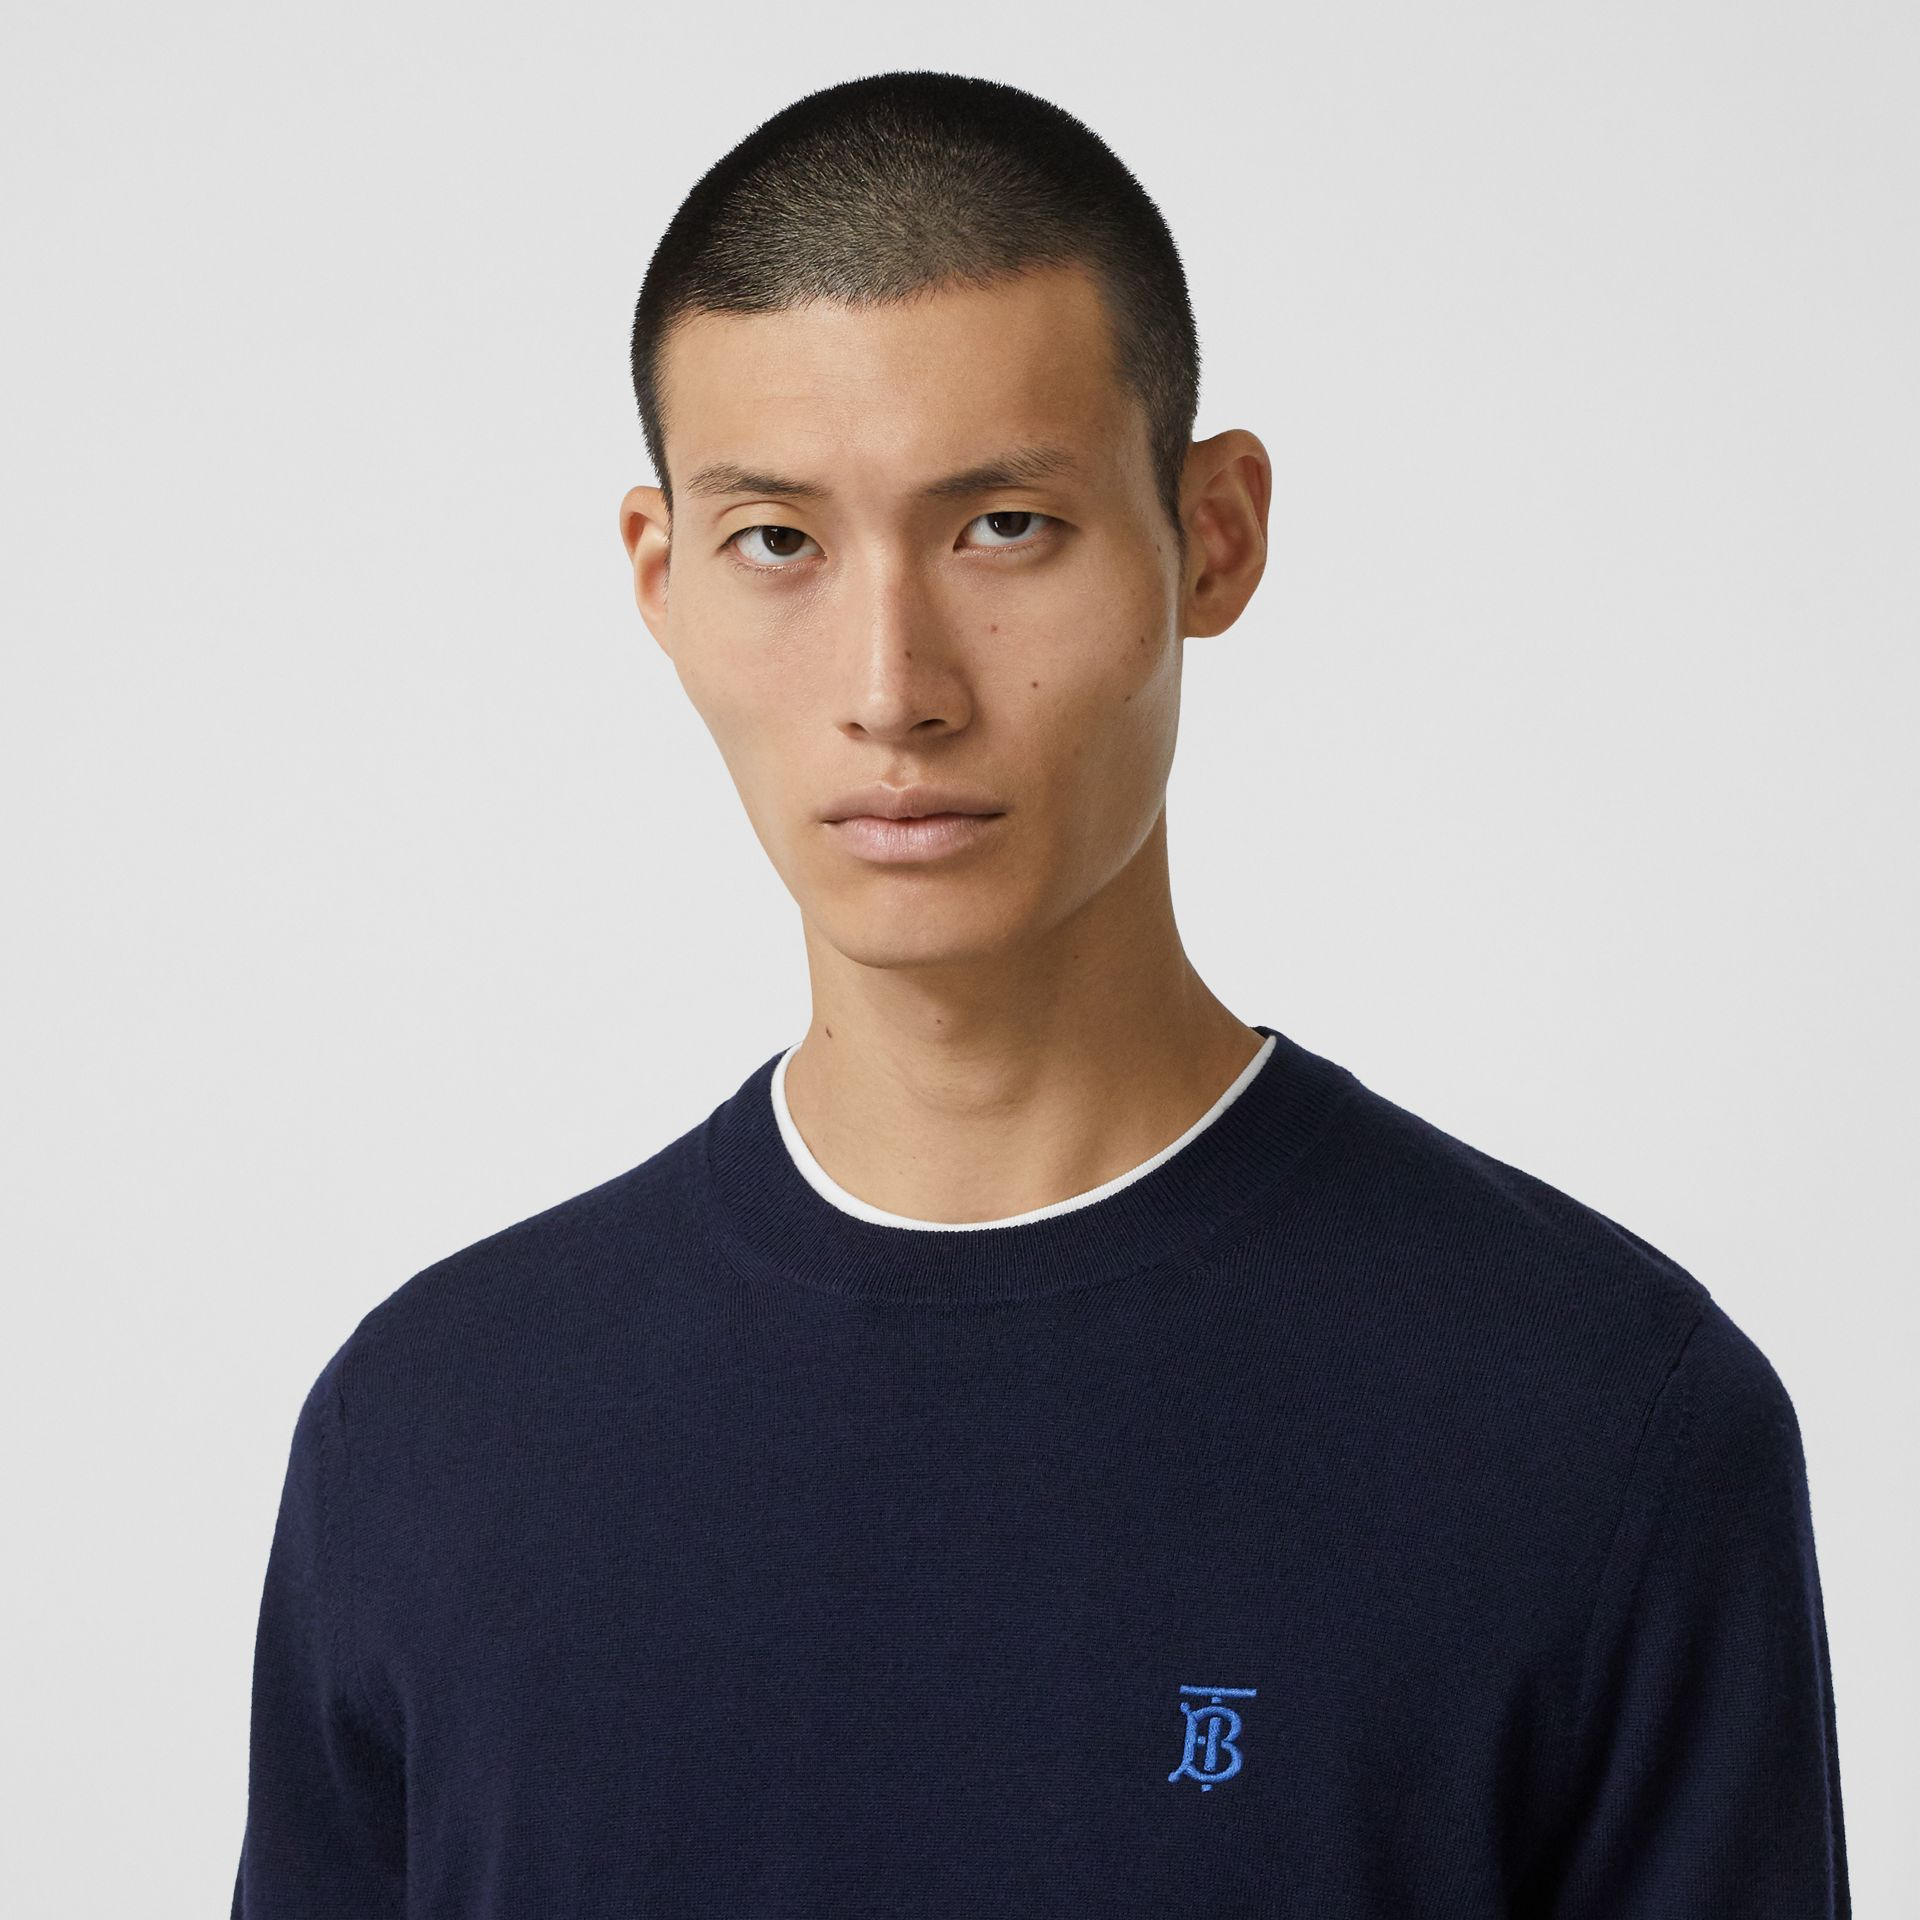 Monogram Motif Merino Wool Sweater in Navy - Men | Burberry - gallery image 1